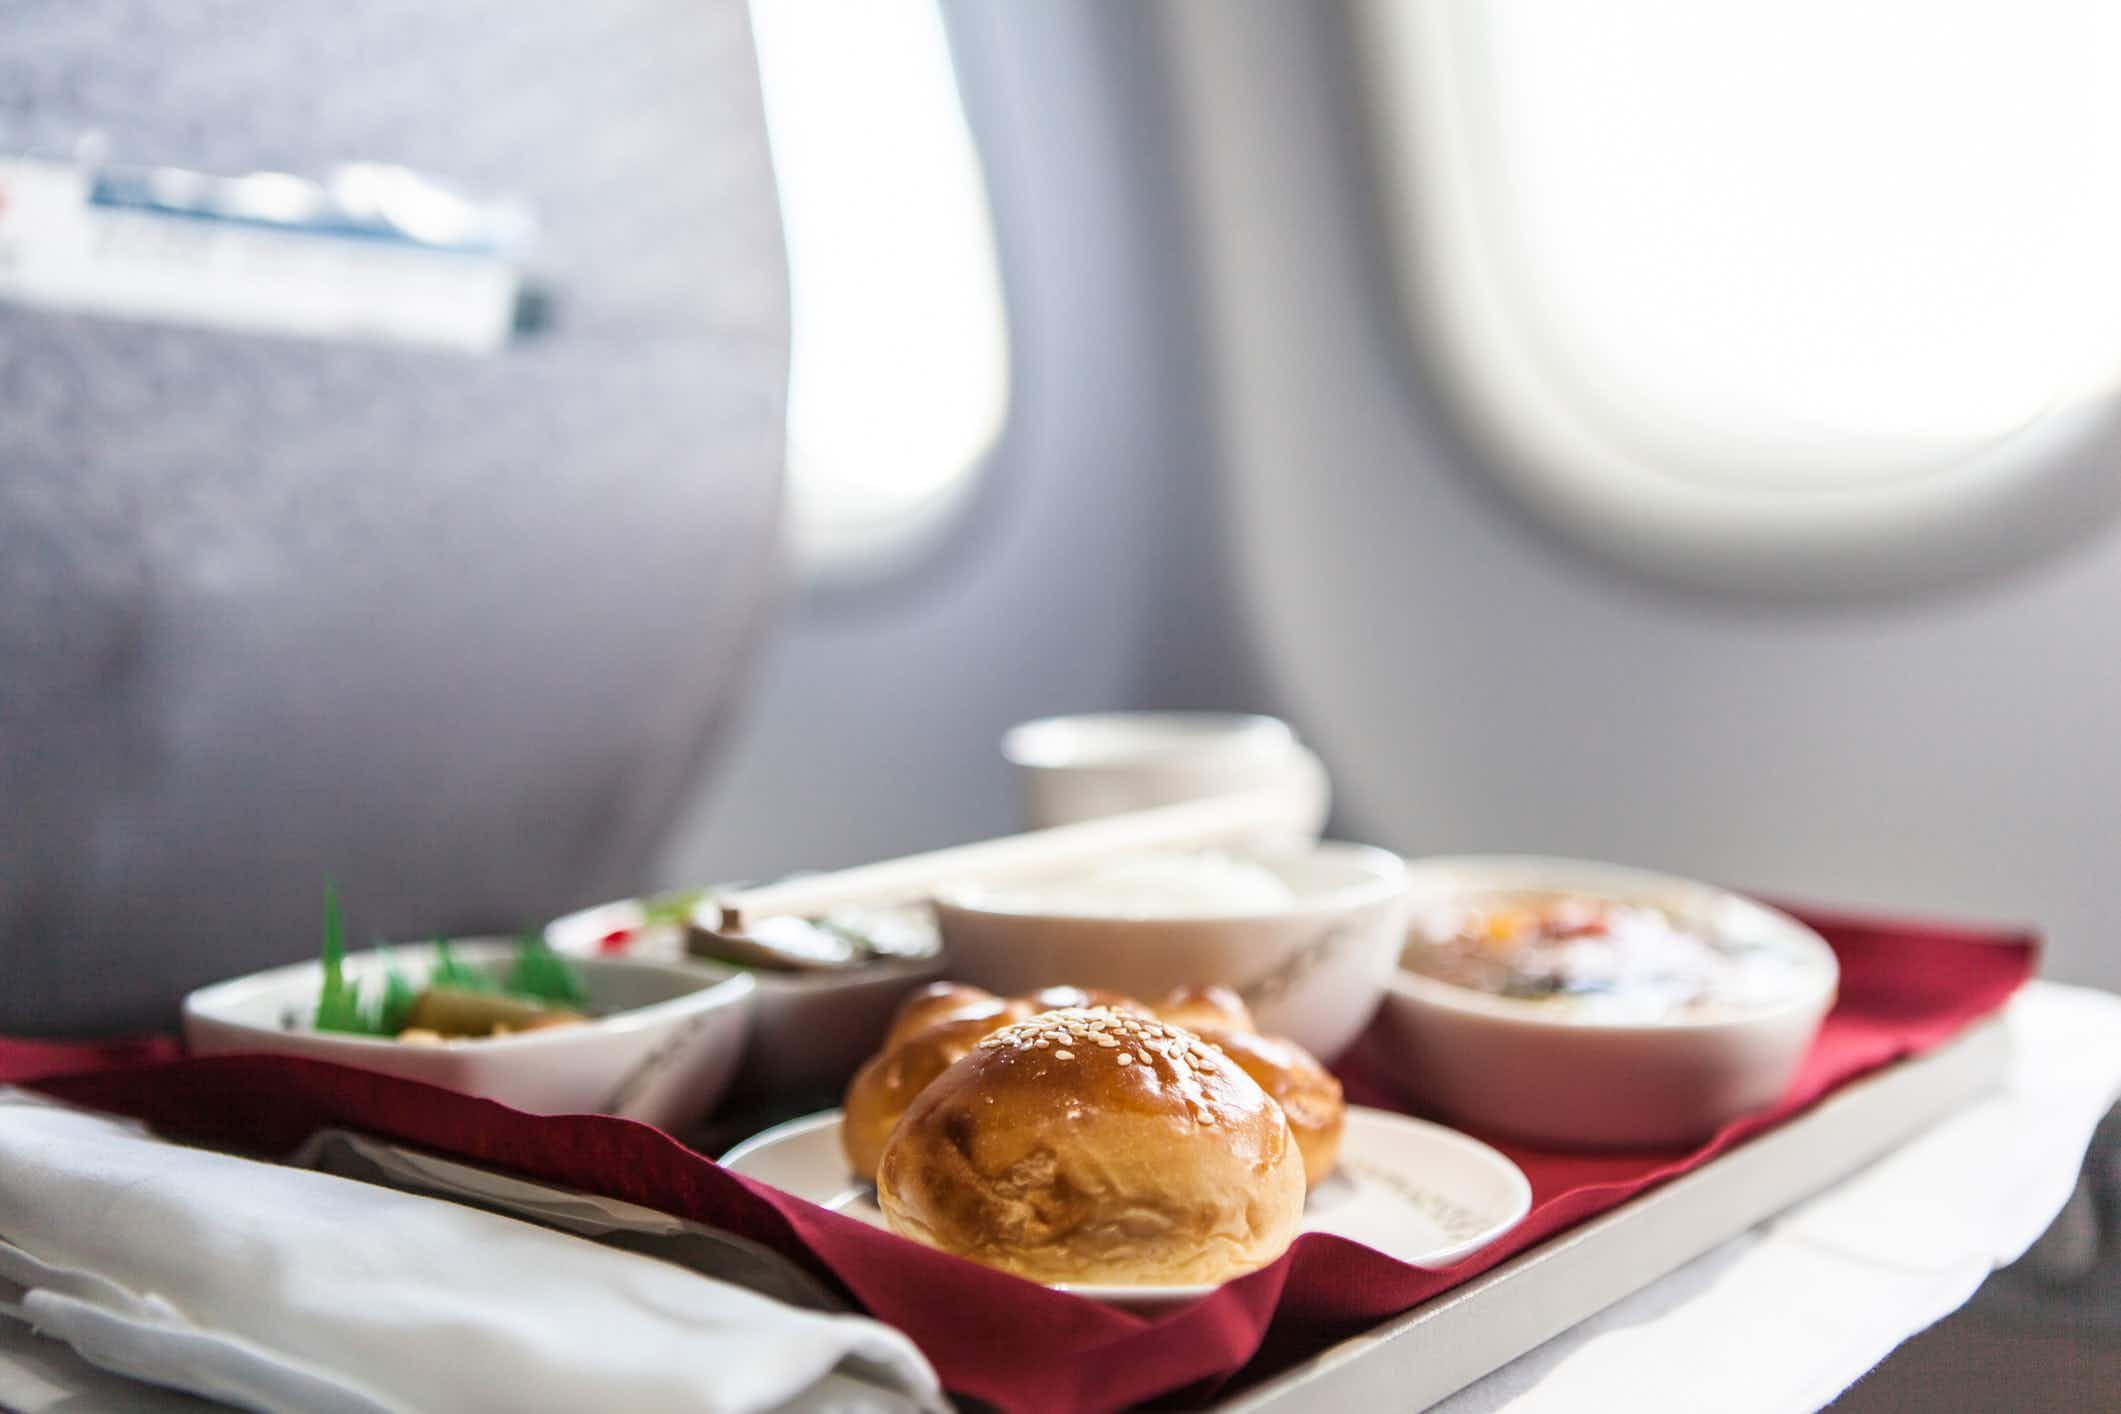 More travel companies are looking to go plastic-free